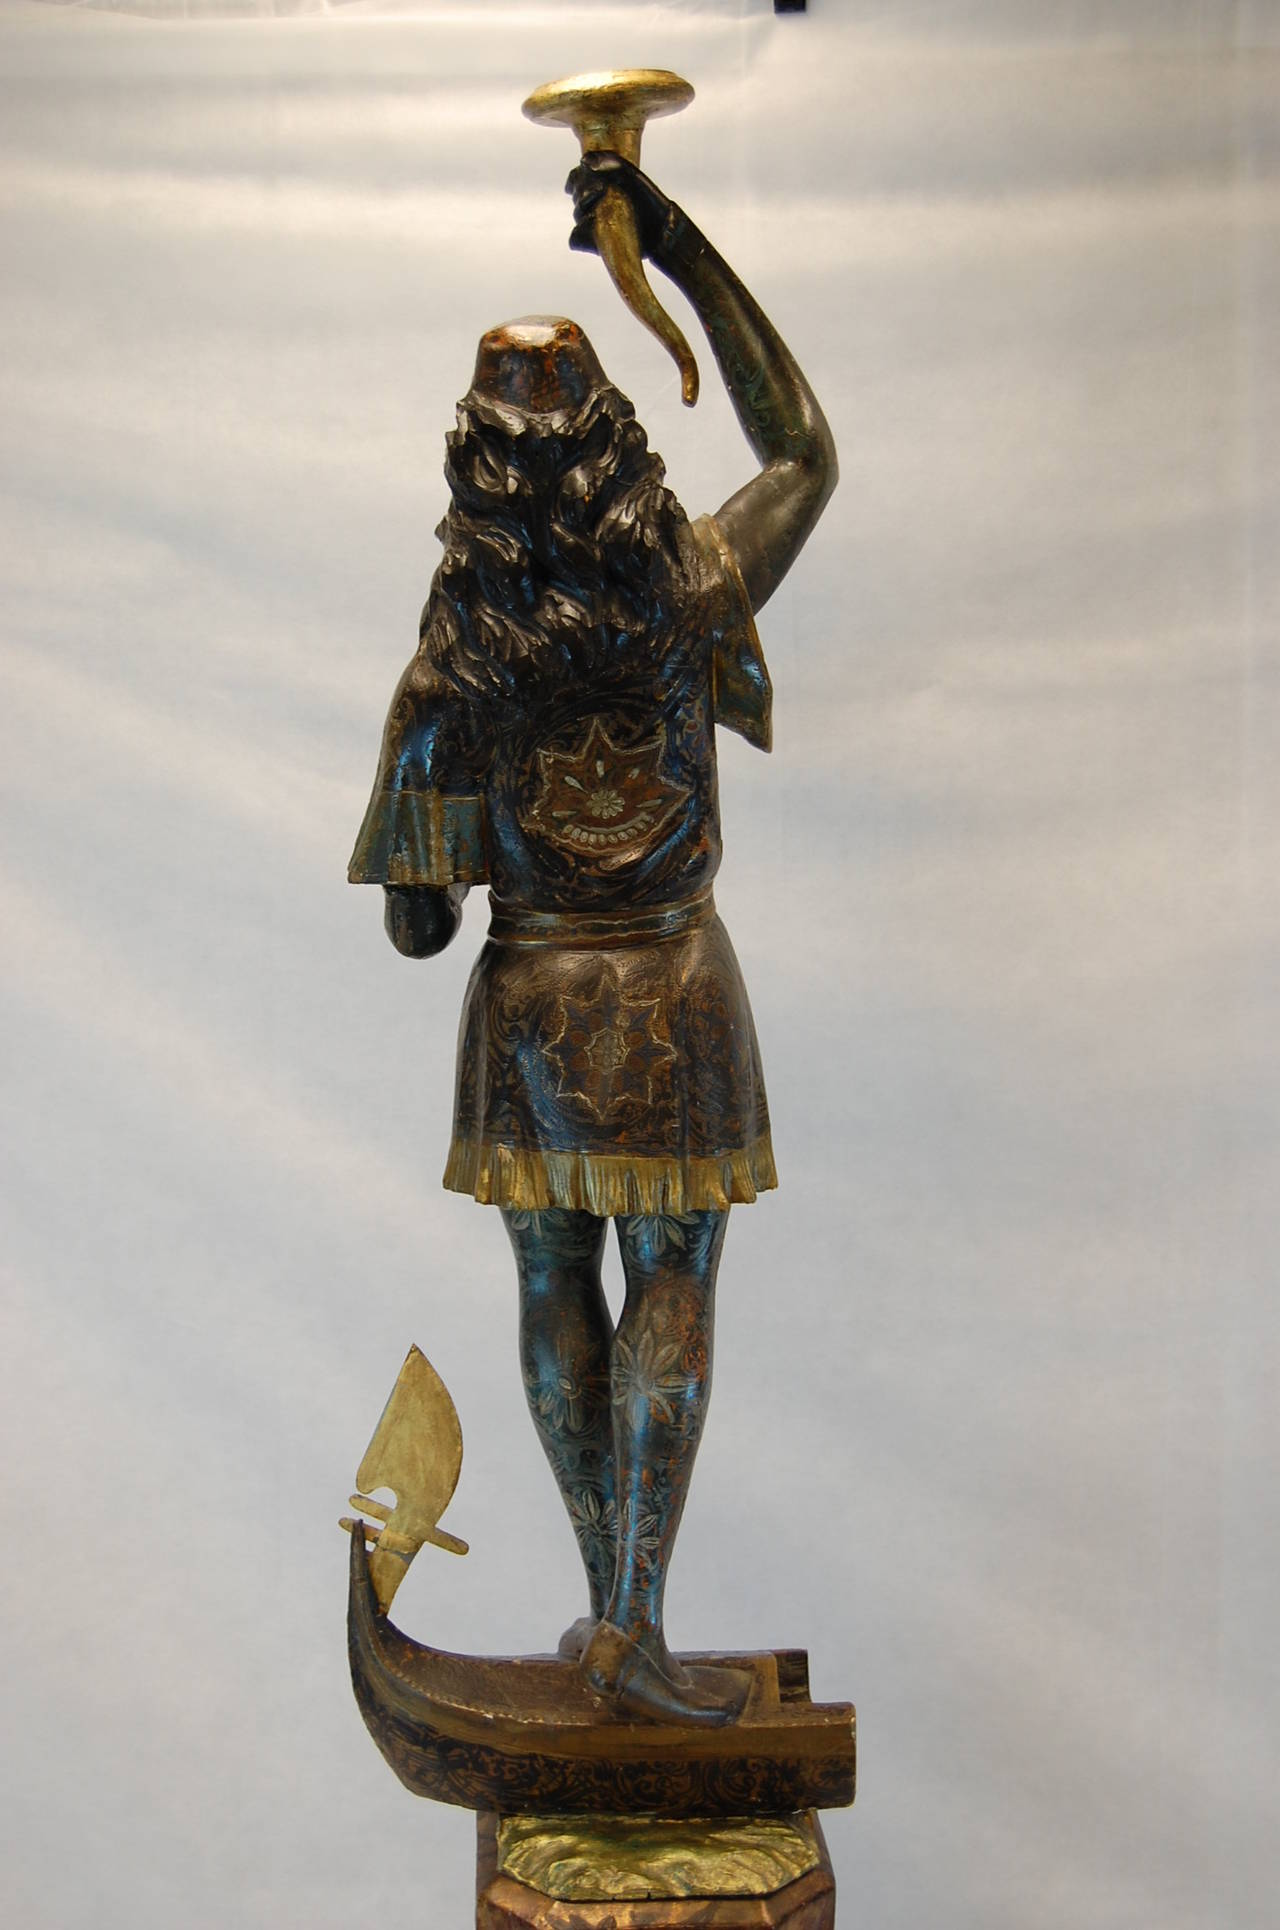 19th Century Carved and Polychromed Venetian Figure on Gondola Base In Good Condition For Sale In Pittsburgh, PA